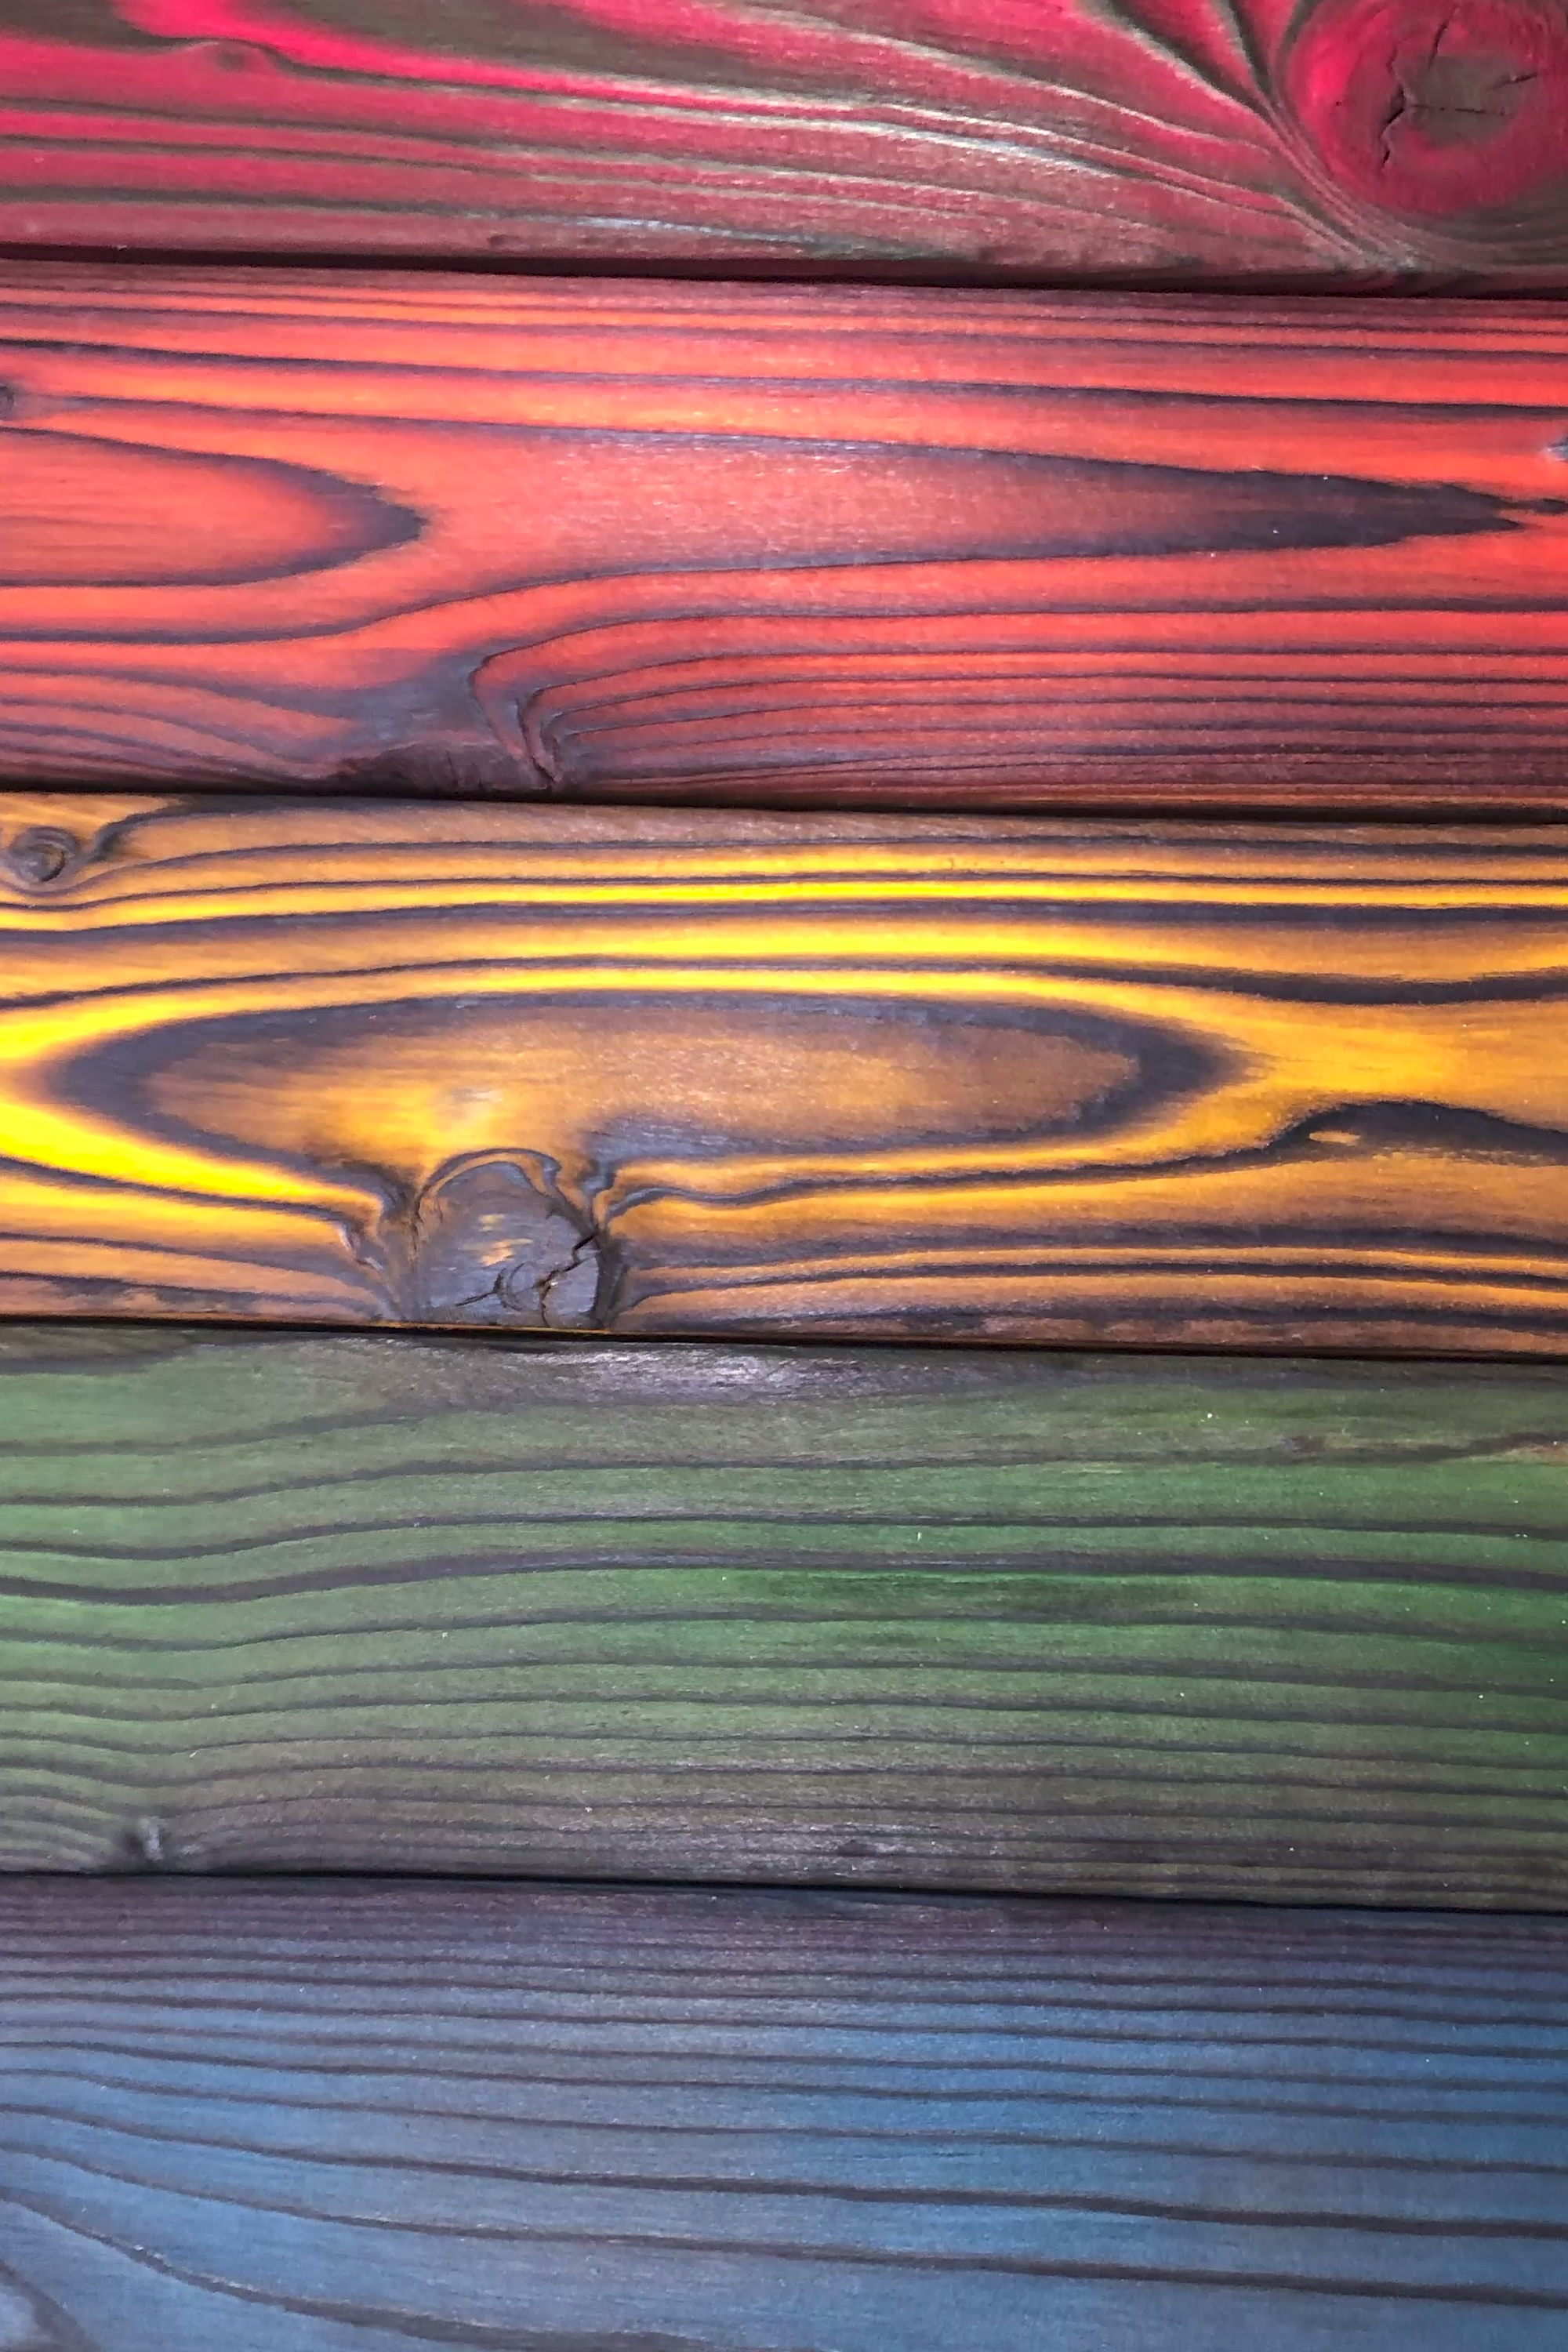 Shou Sugi Ban Burn Wood With Color How To Dye Wood With Keda Wood Dye Video Rustic Wood Crafts Staining Wood Woodworking